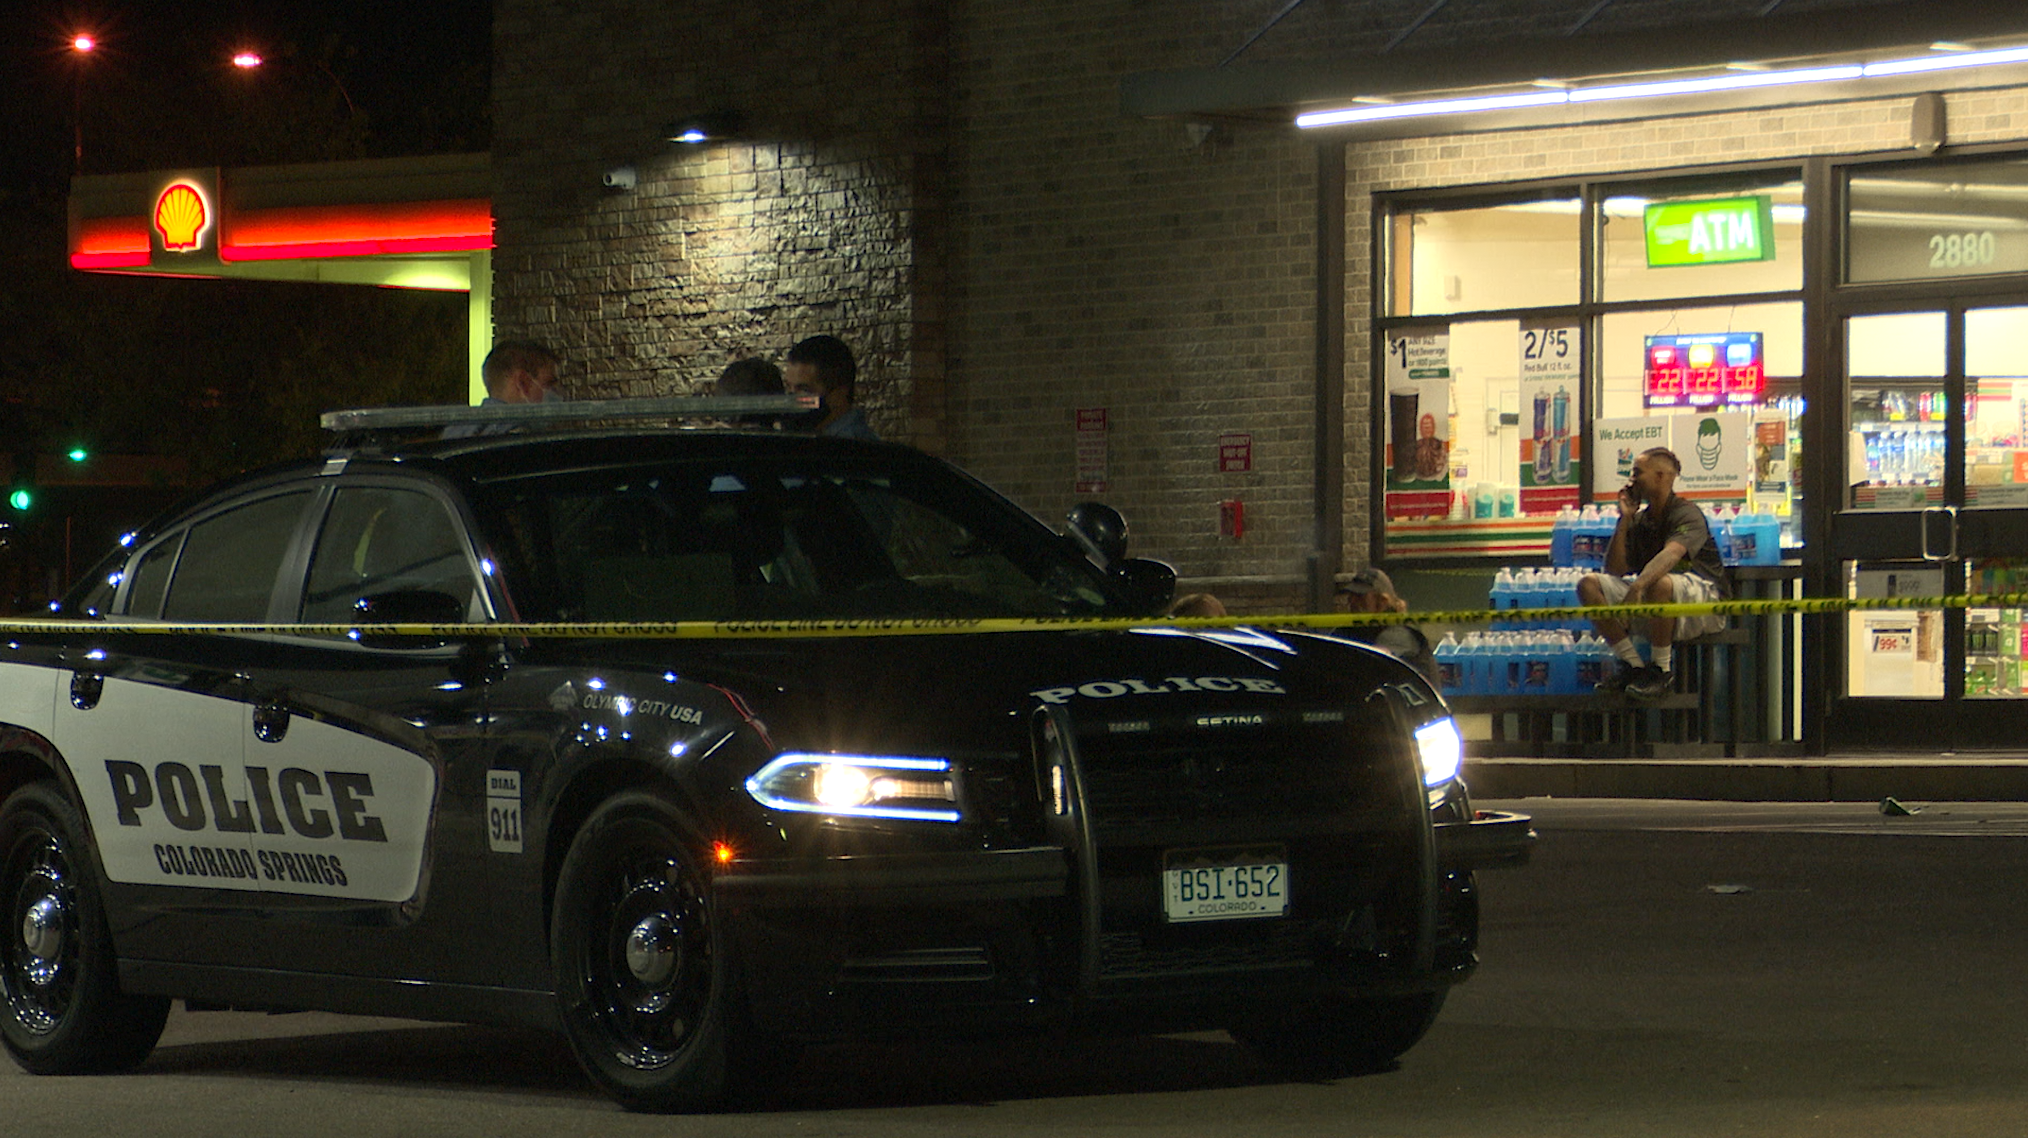 Police respond to hit and run at 7-eleven on S Circle Drive.